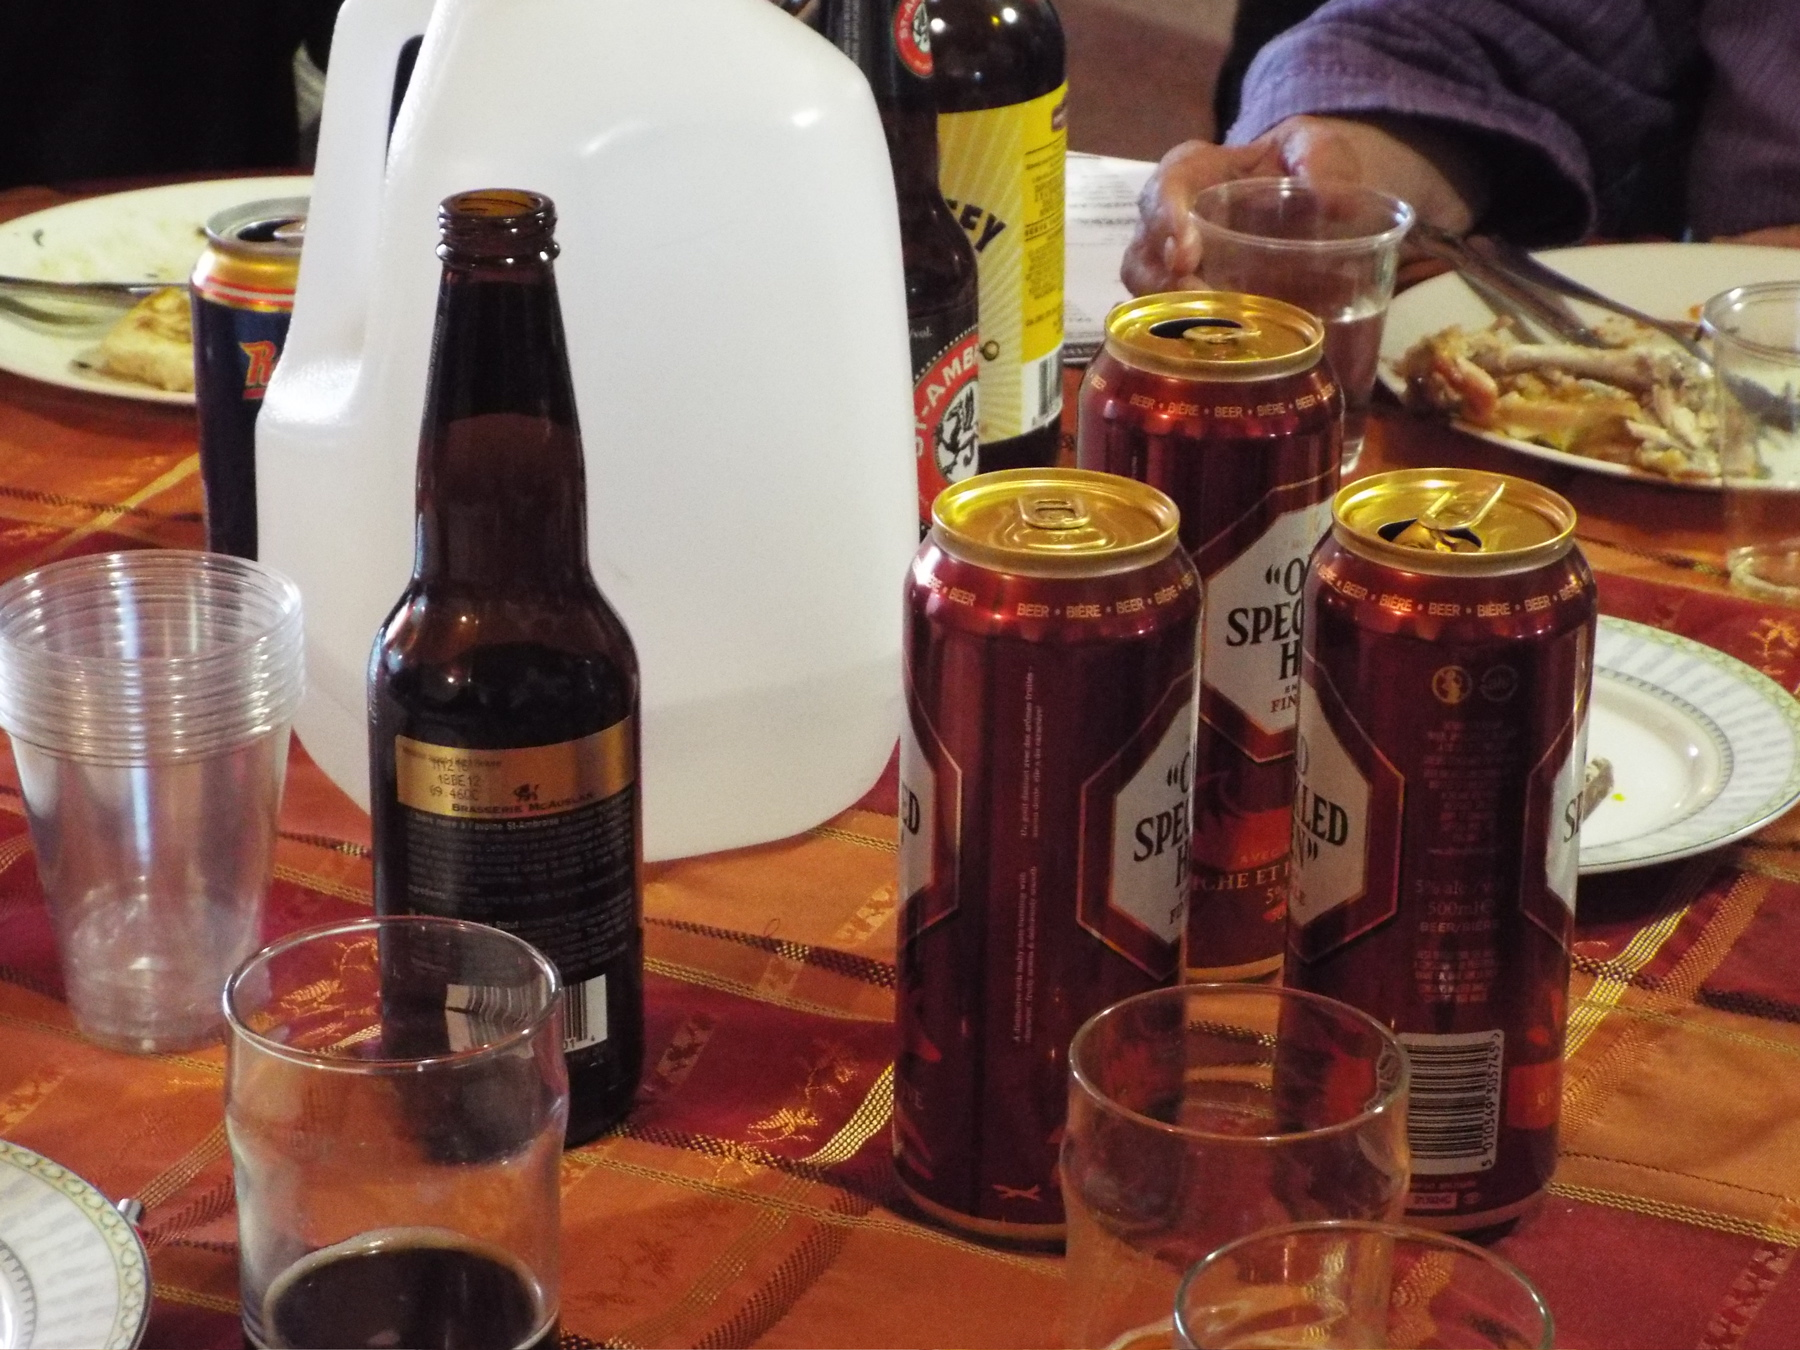 Our late afternoon beer-tasting session carried over into dinner.